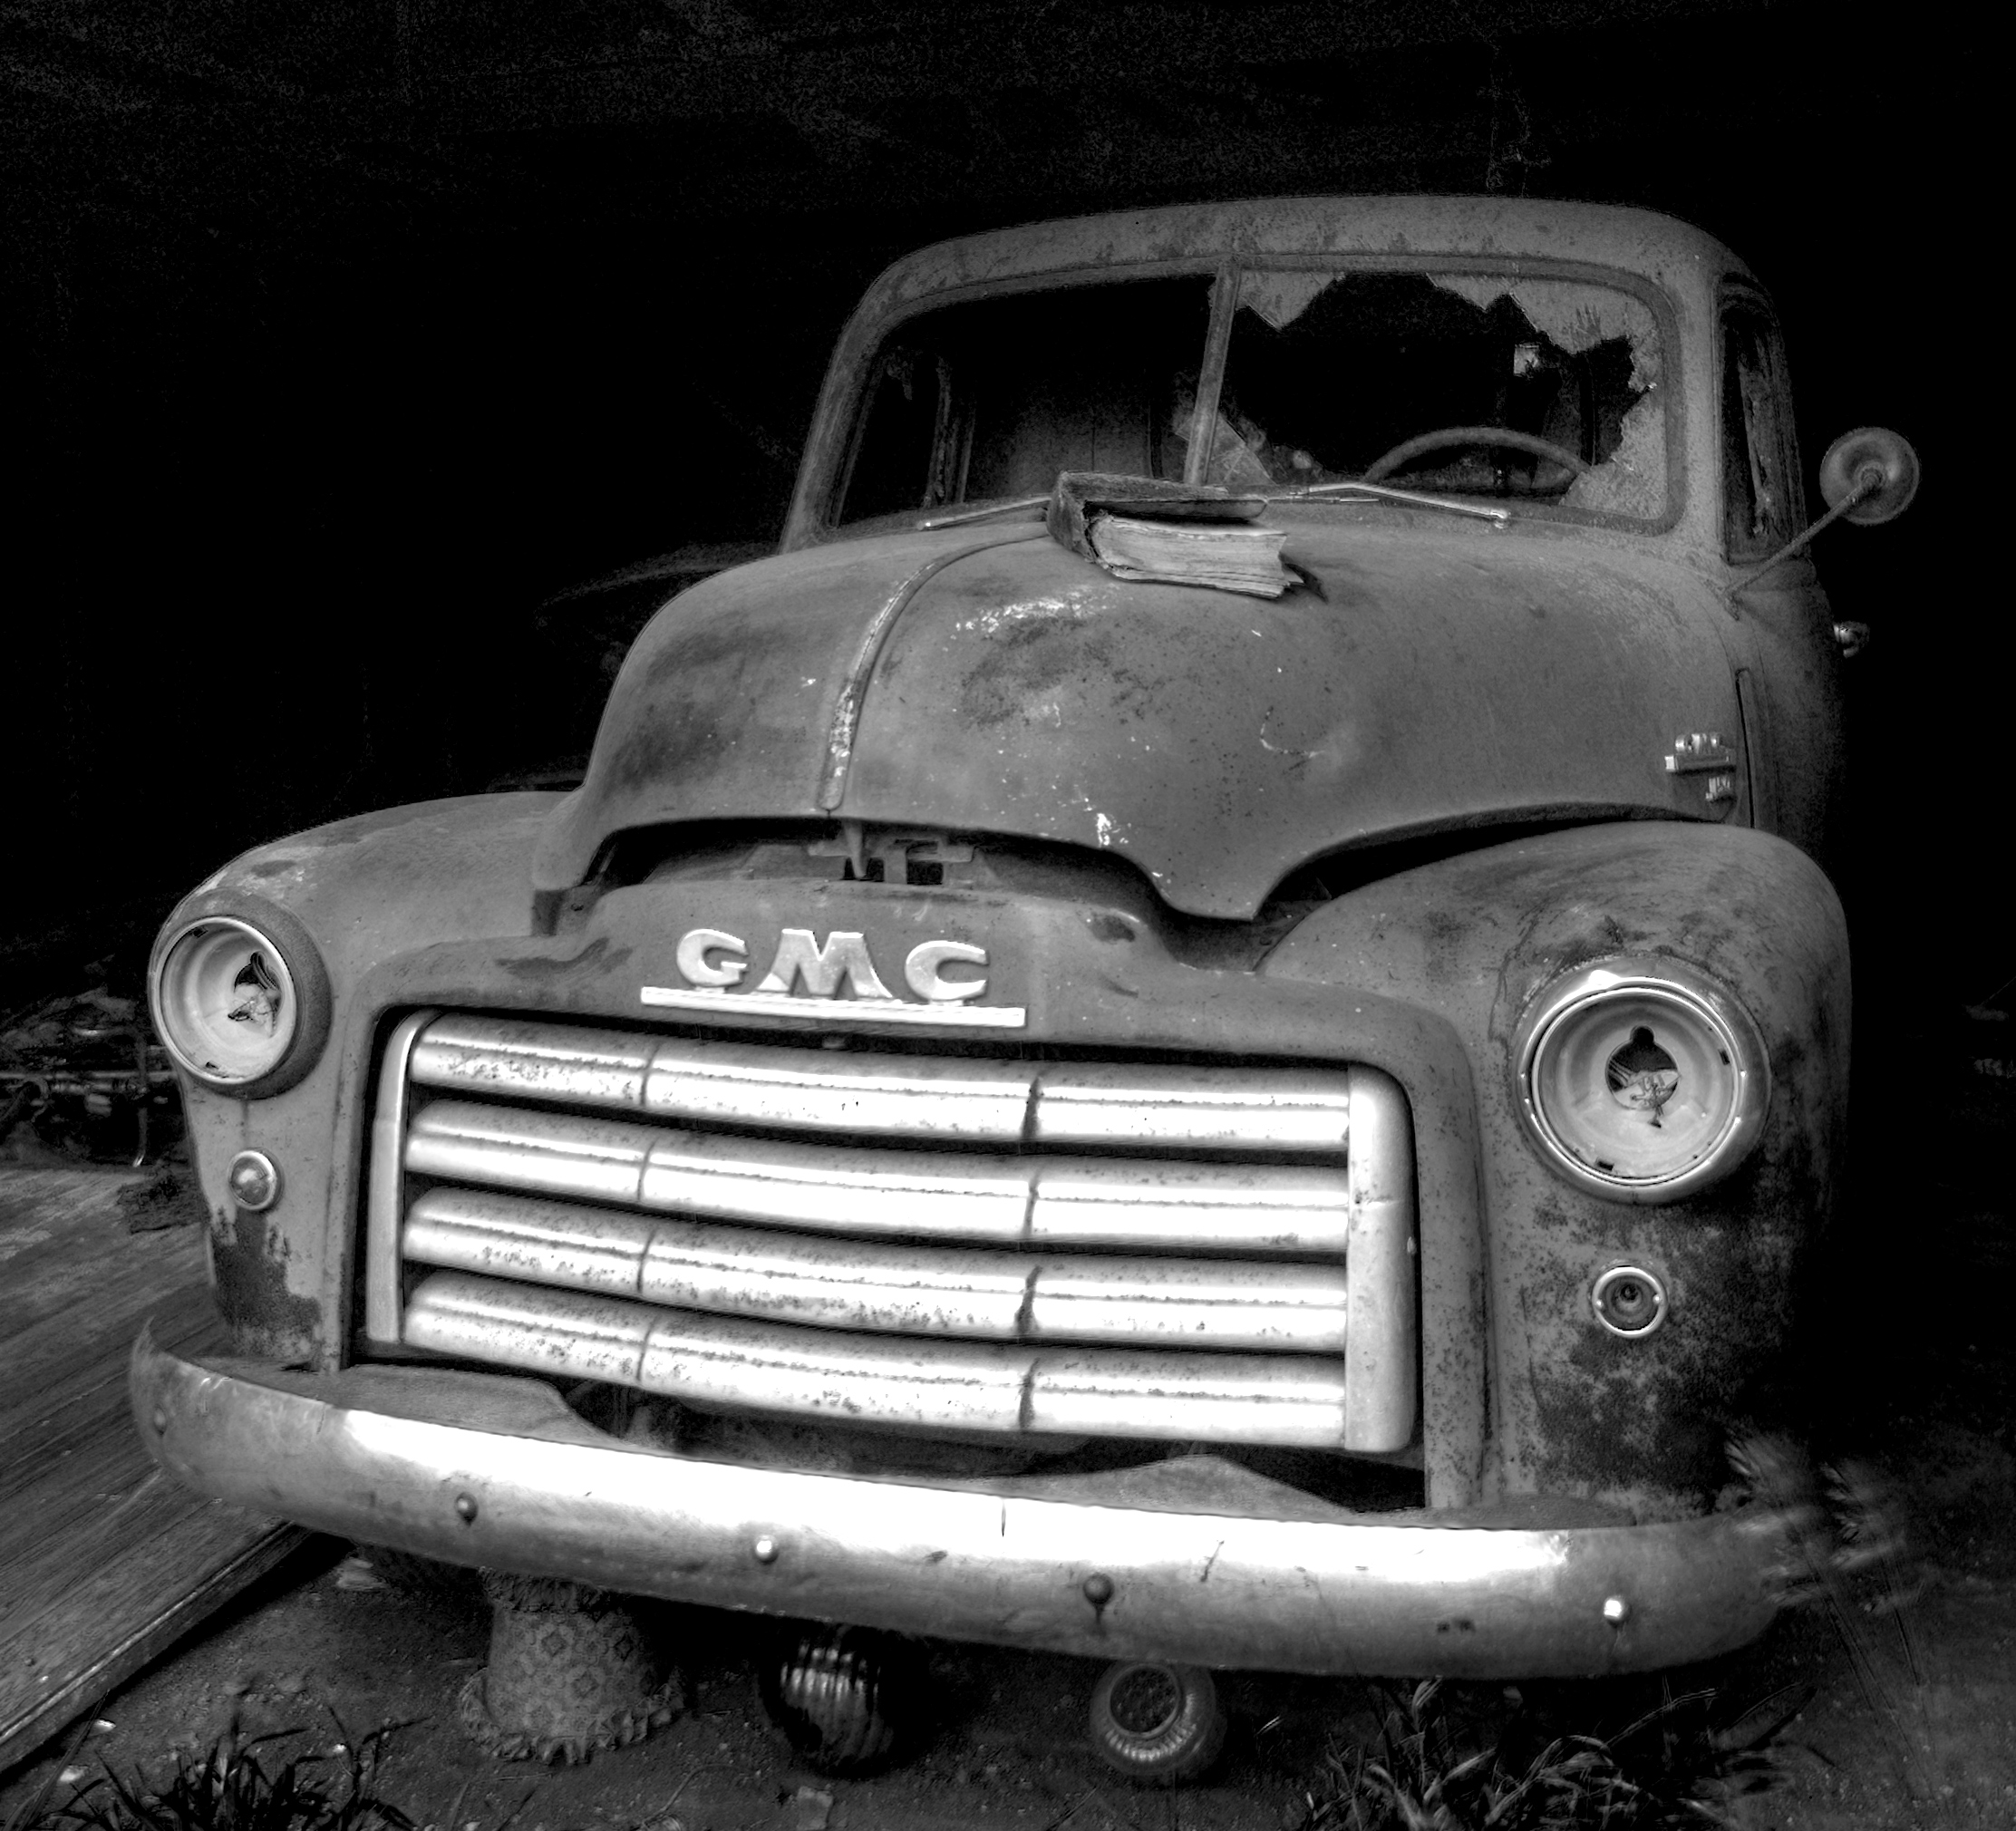 Old GMC